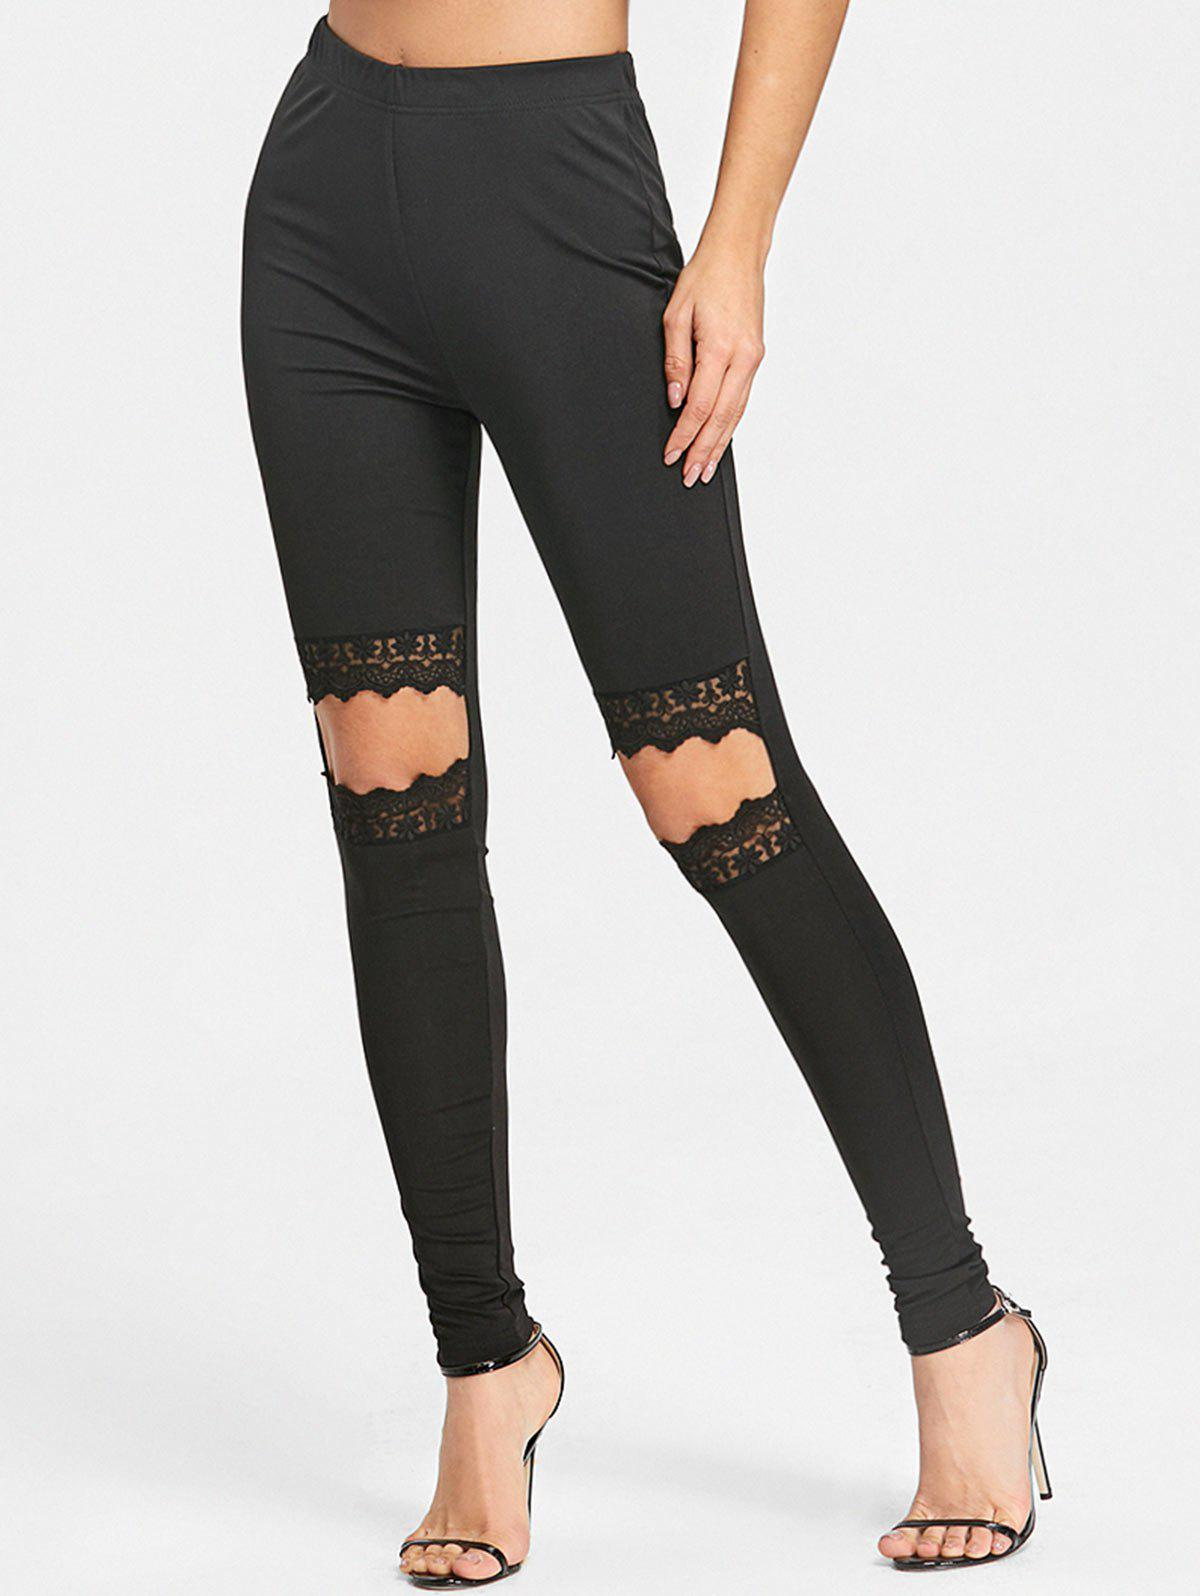 Lace Knee Cut Out Leggings - BLACK L